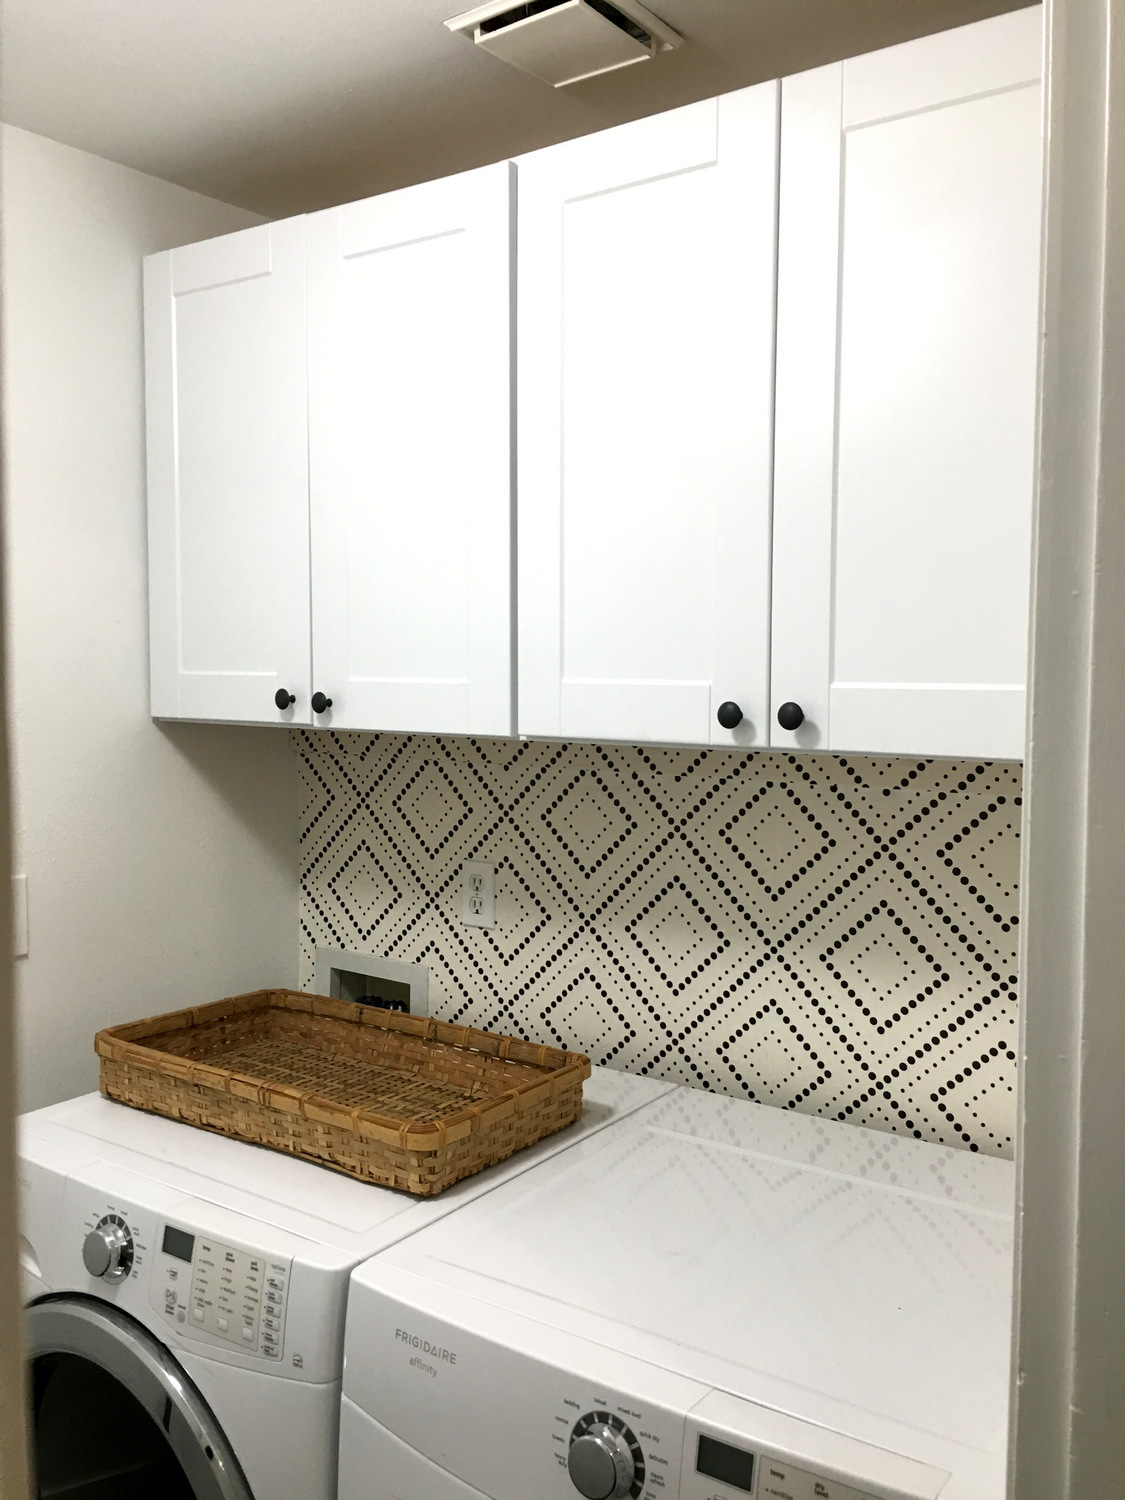 Laundry Room Wallpaper Hang Removable Wallpaper Horizontally Walls Need Love Geometric